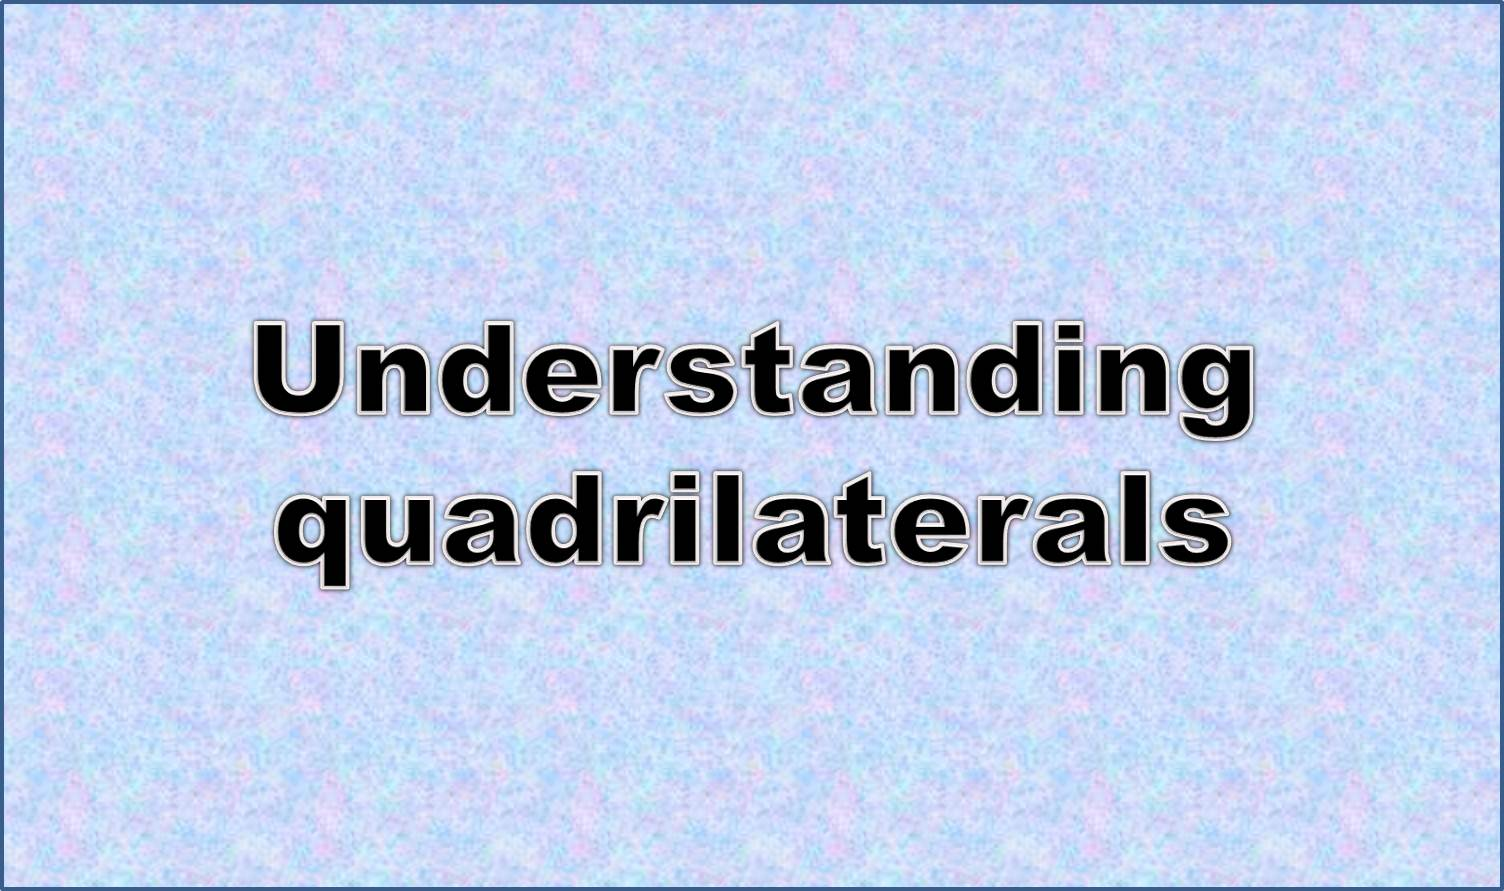 http://study.aisectonline.com/images/Quadrilateral types.jpg